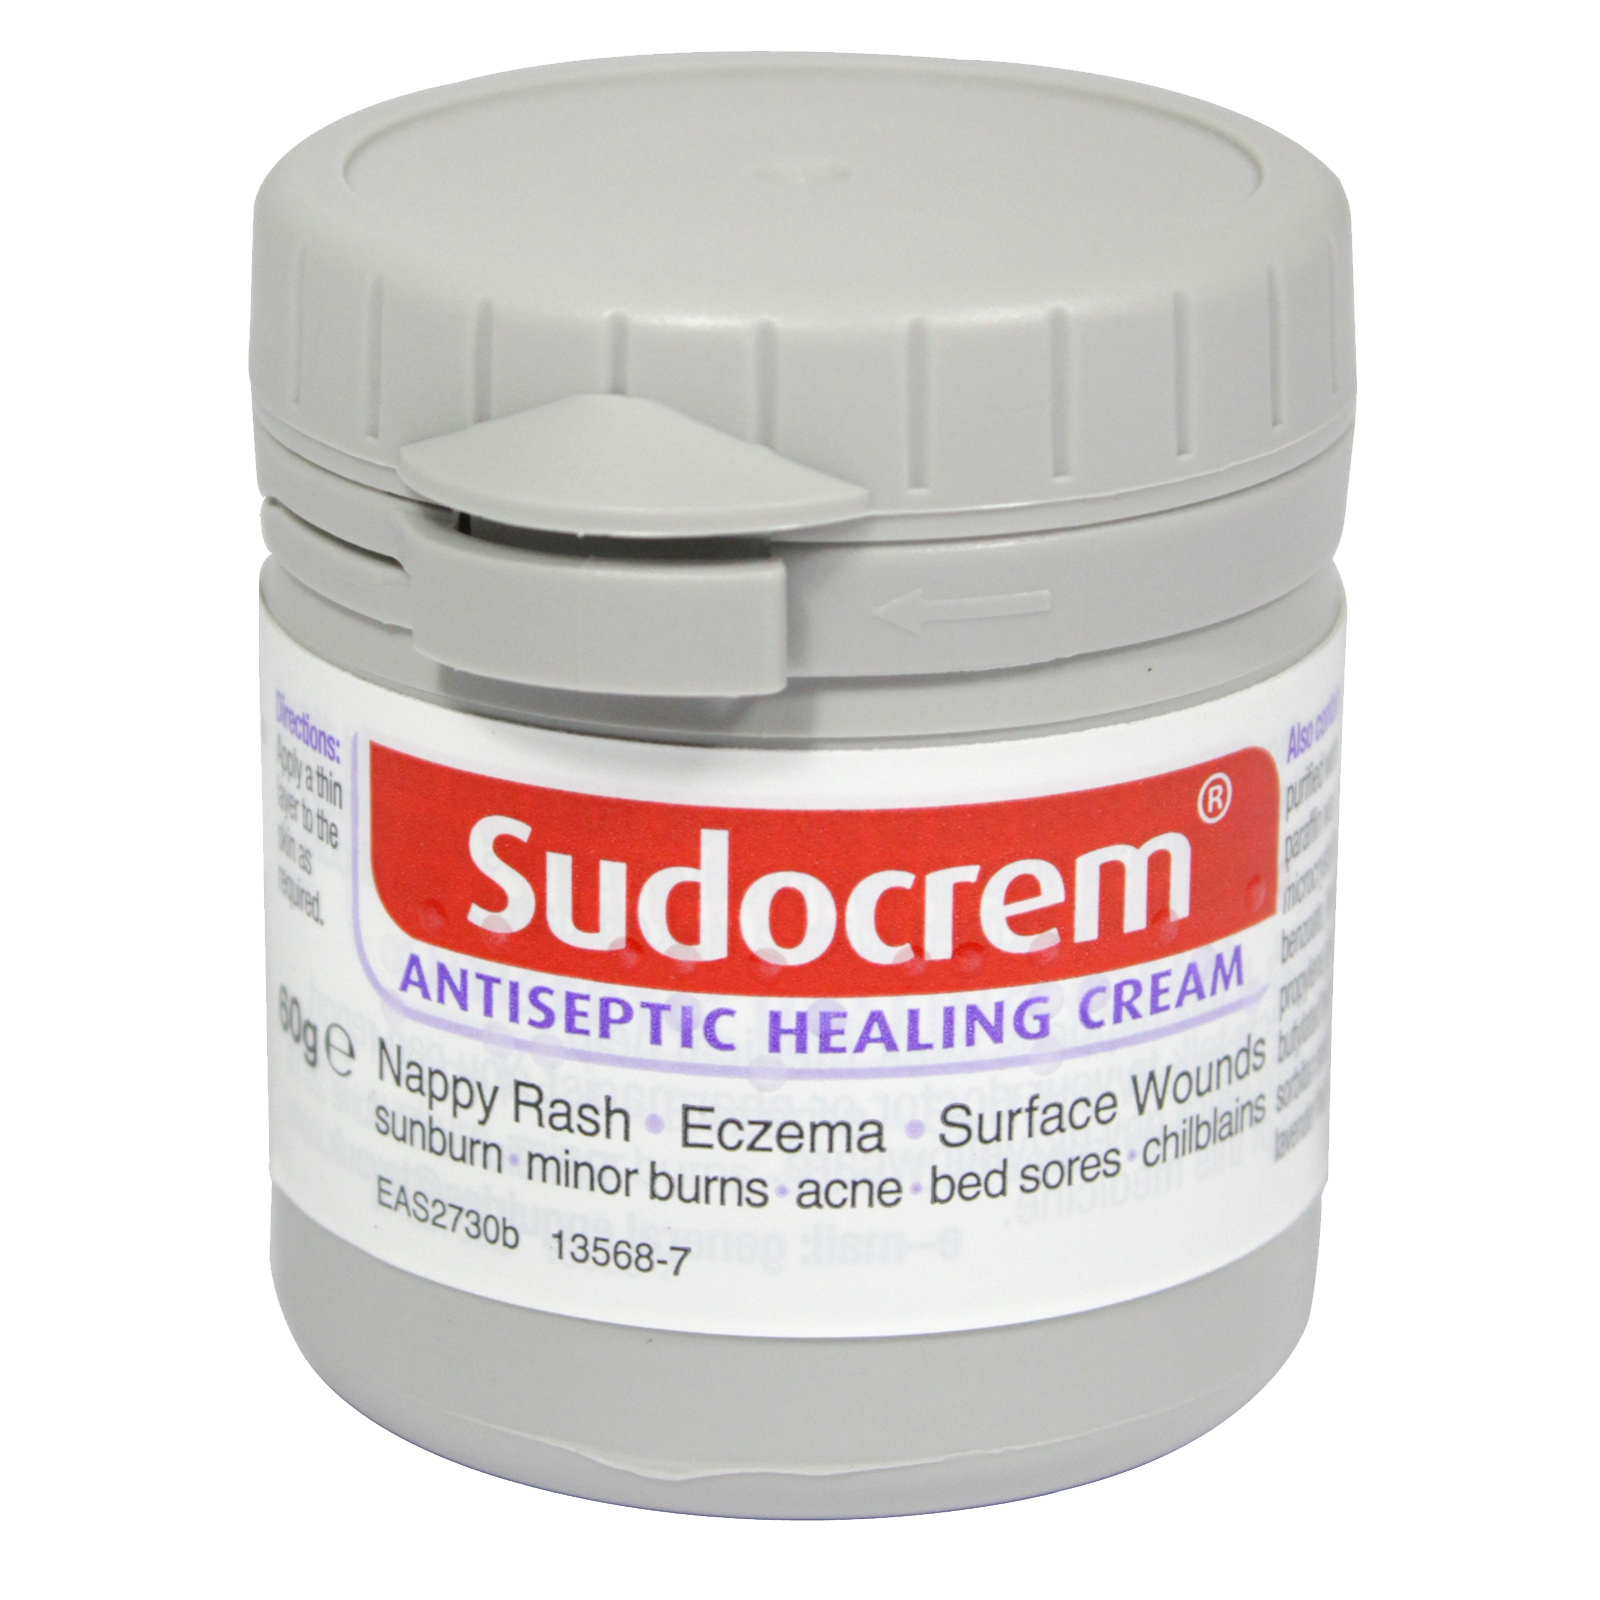 SUDOCREM 60G ANTISEPTIC TUB (NON RETURNABLE)